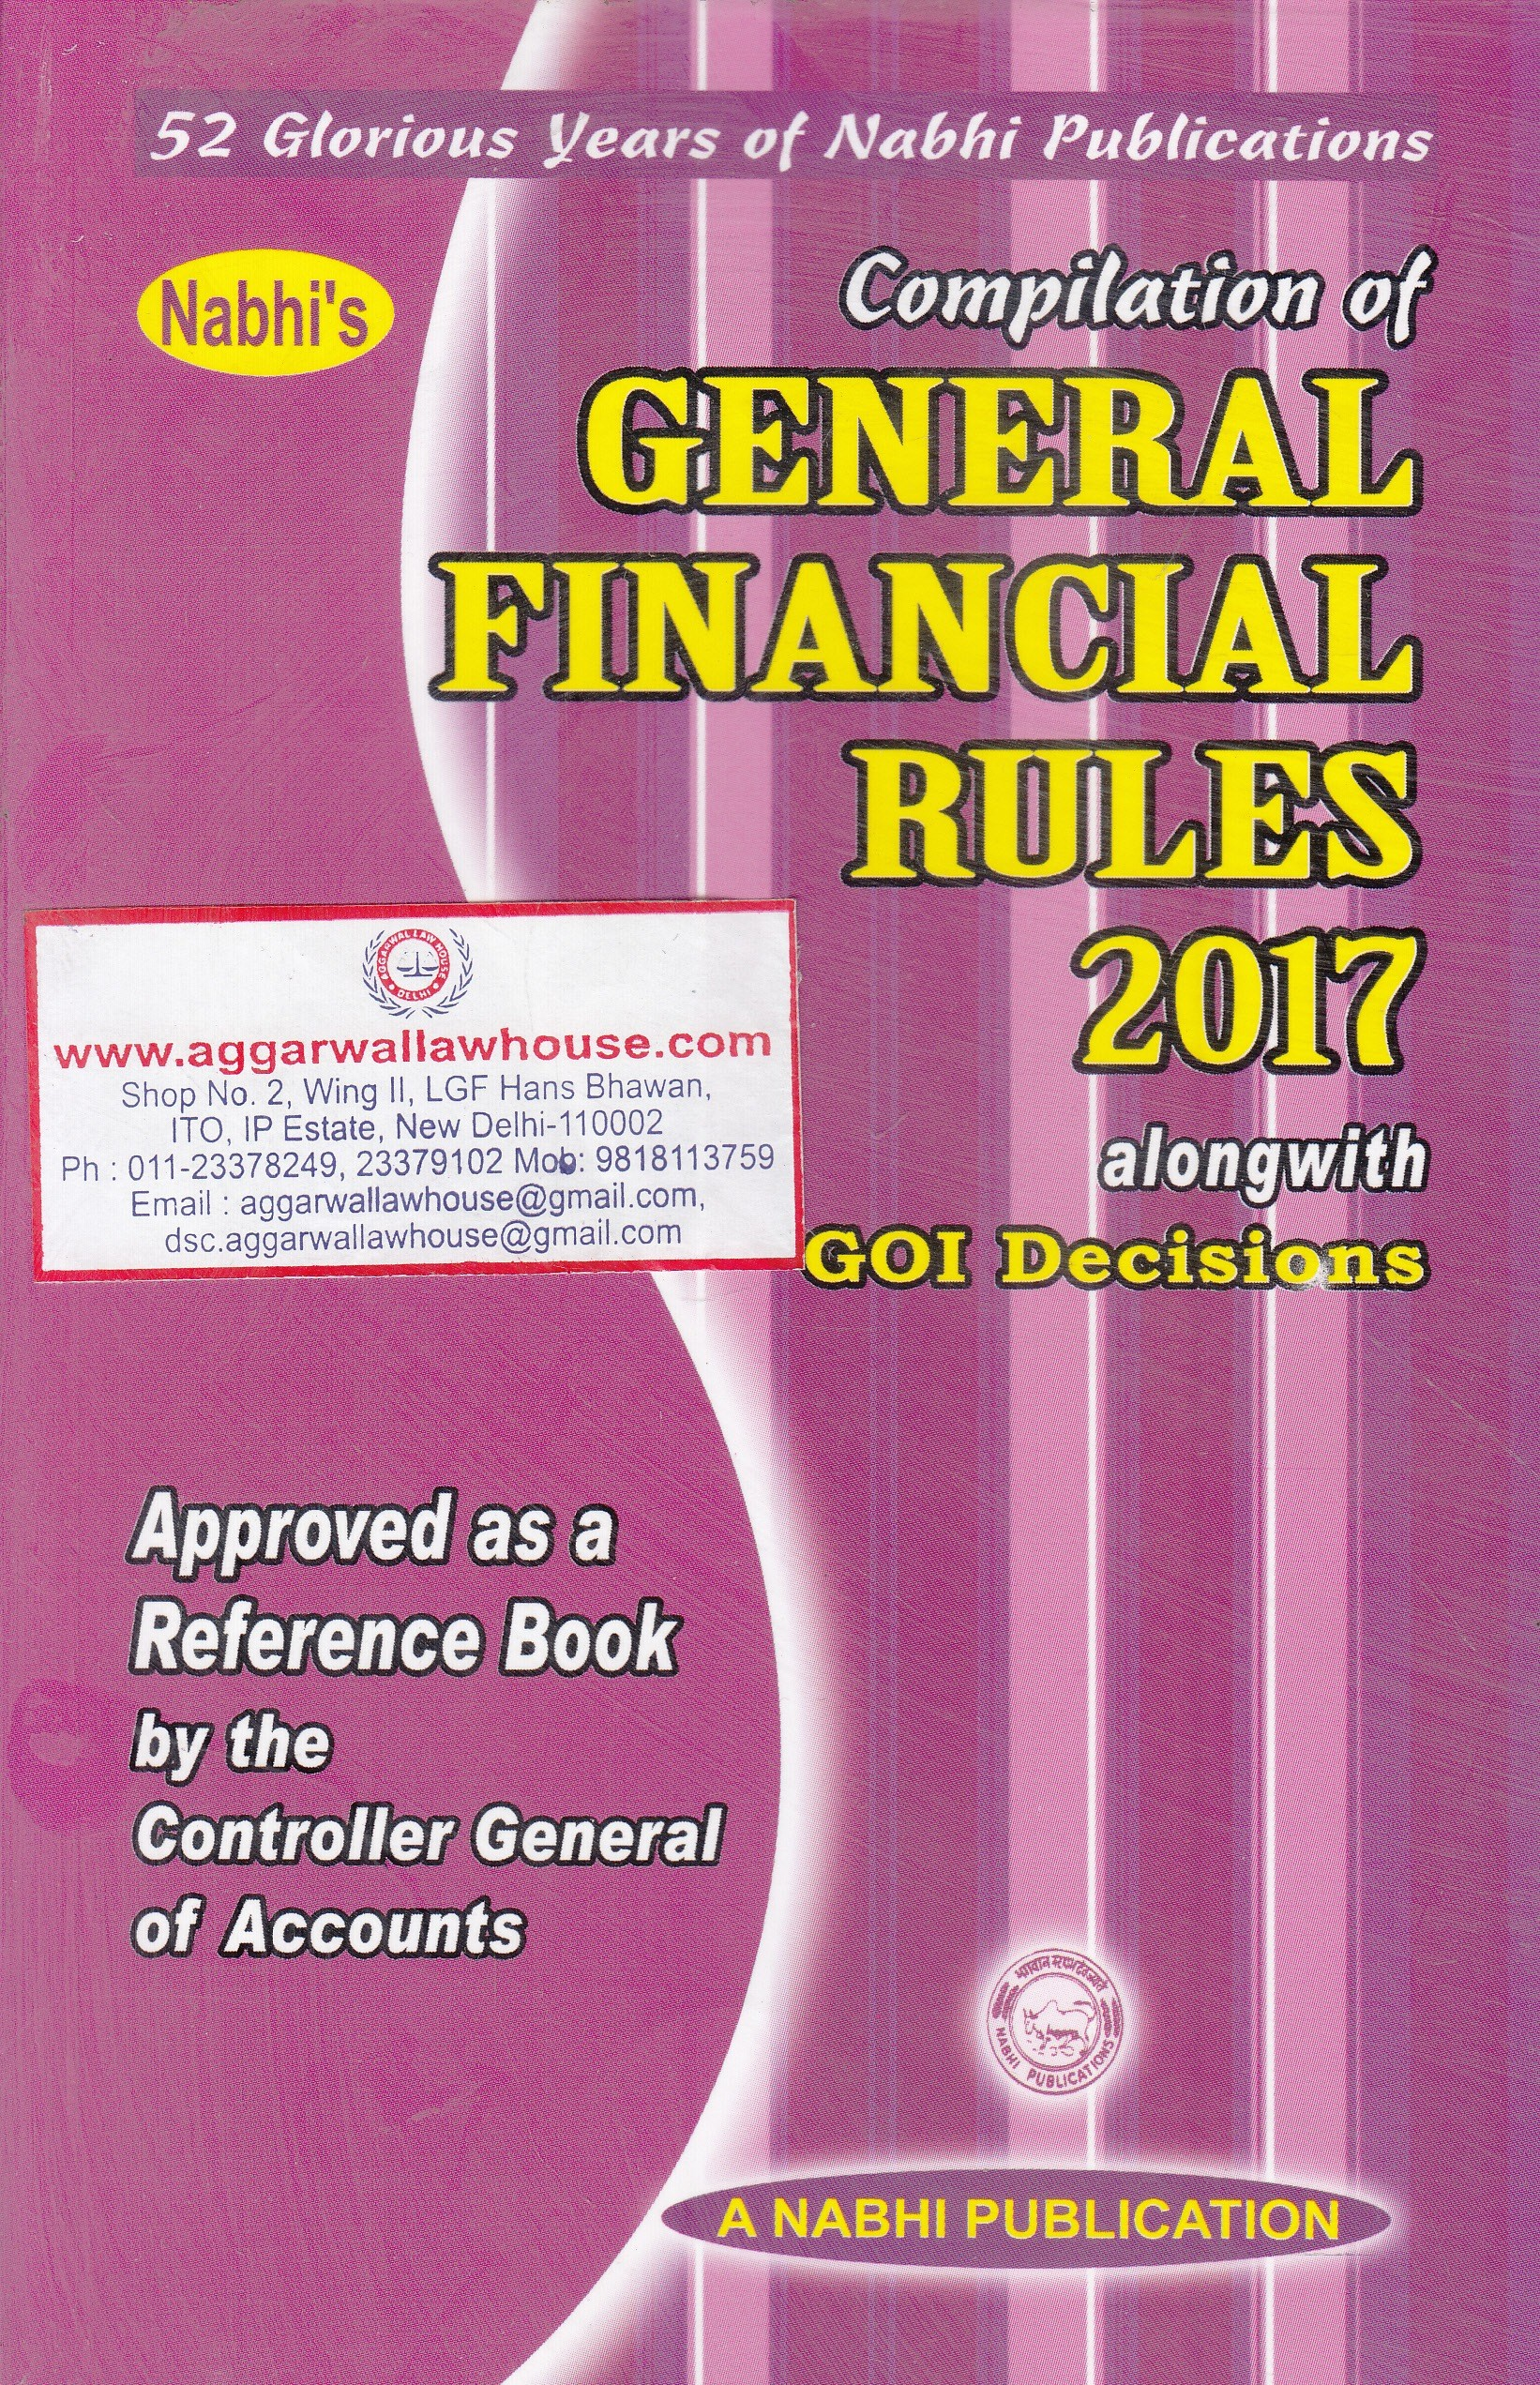 Compilation of General Financial Rules 2017